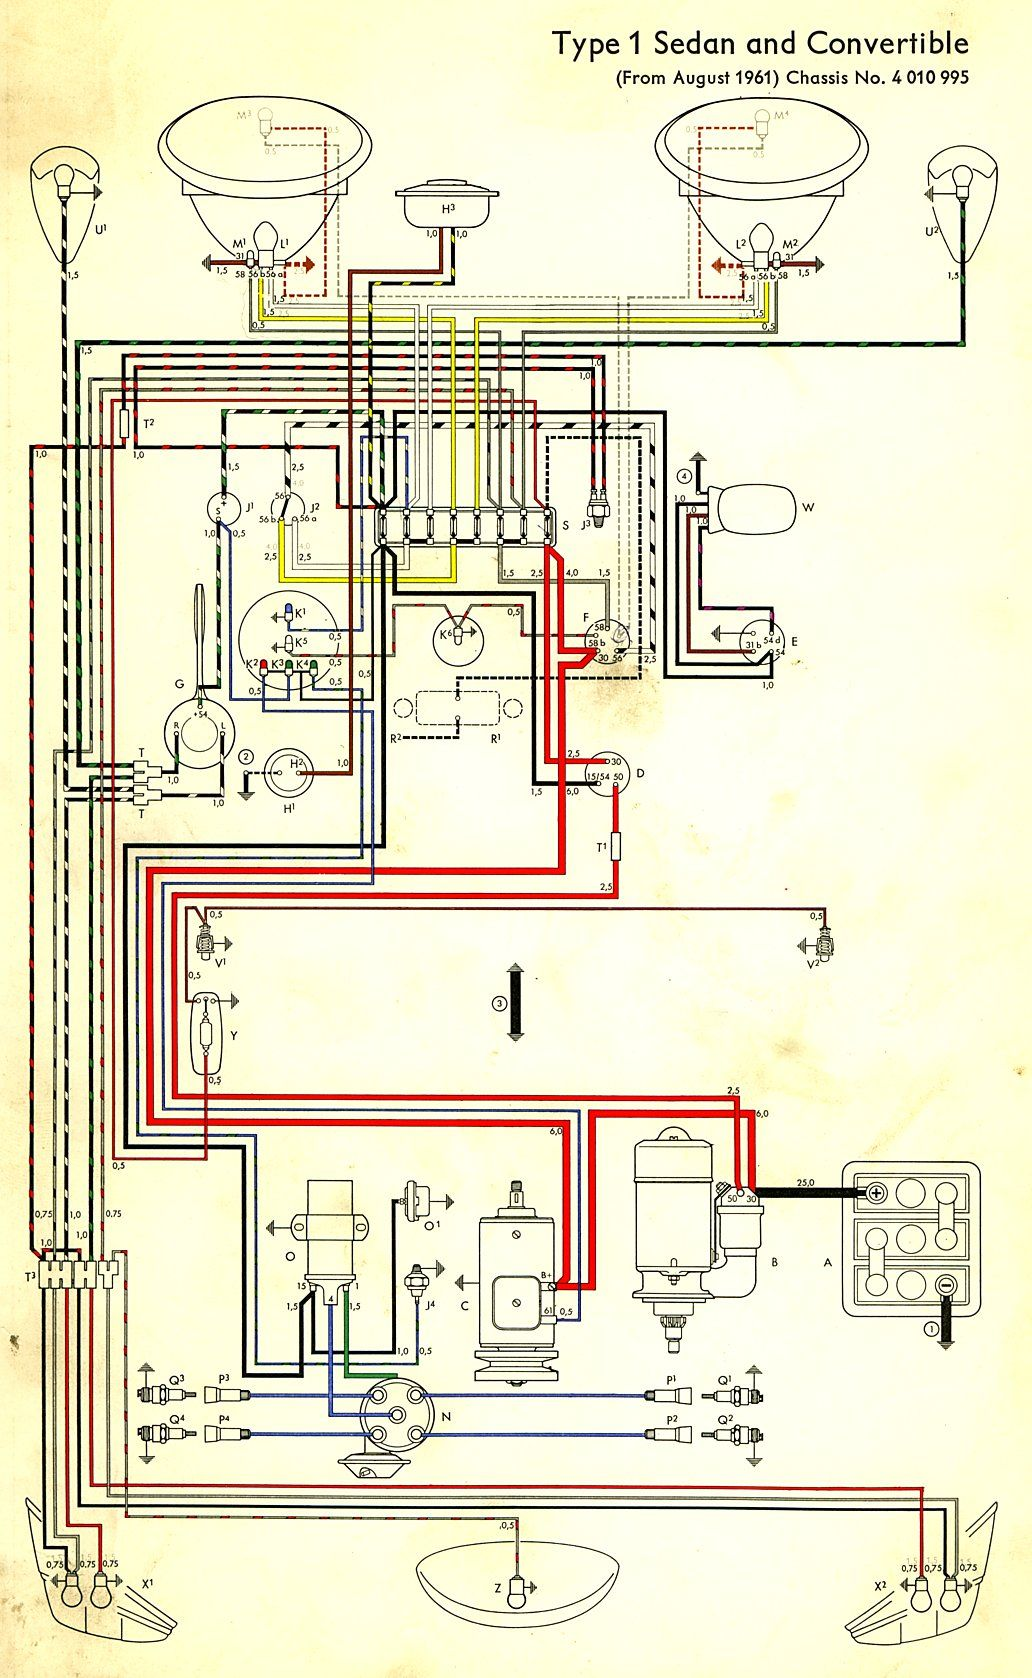 wiring diagram in color. 1964 vw bug, beetle, convertible. the samba |  motor vocho, vochos clasicos, vw vocho  pinterest